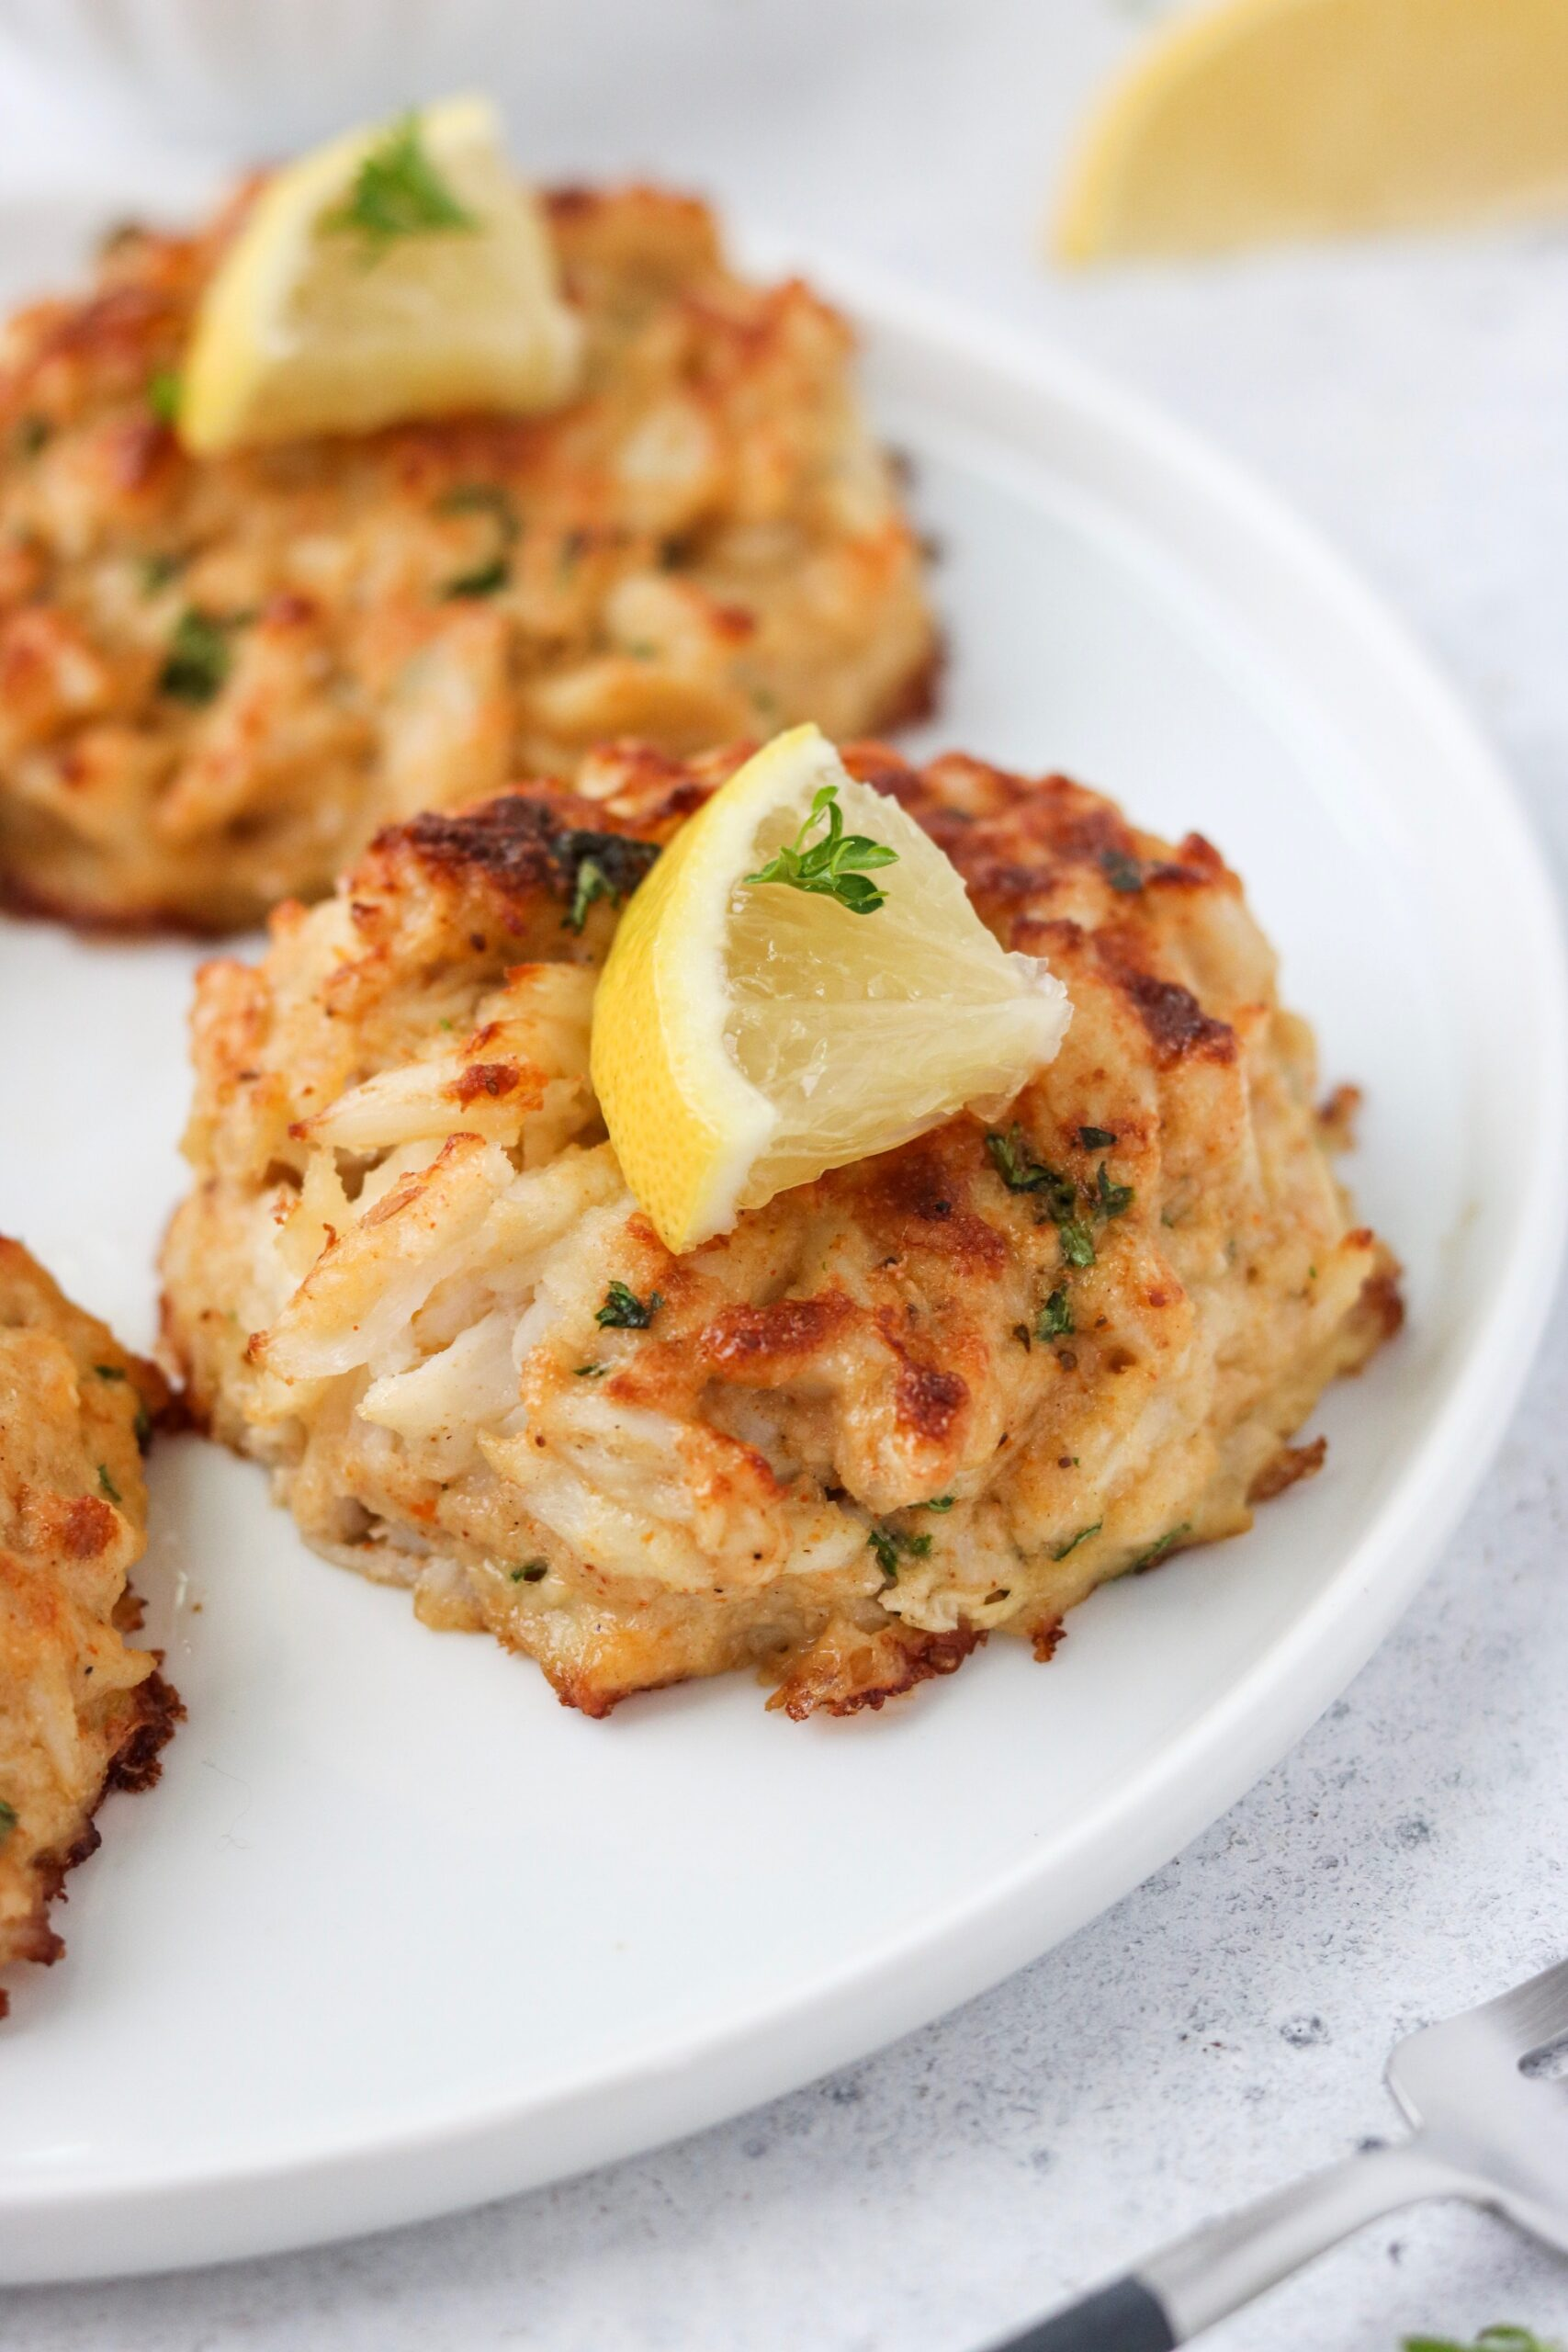 Whole30 crab cakes that are gluten free with lemon